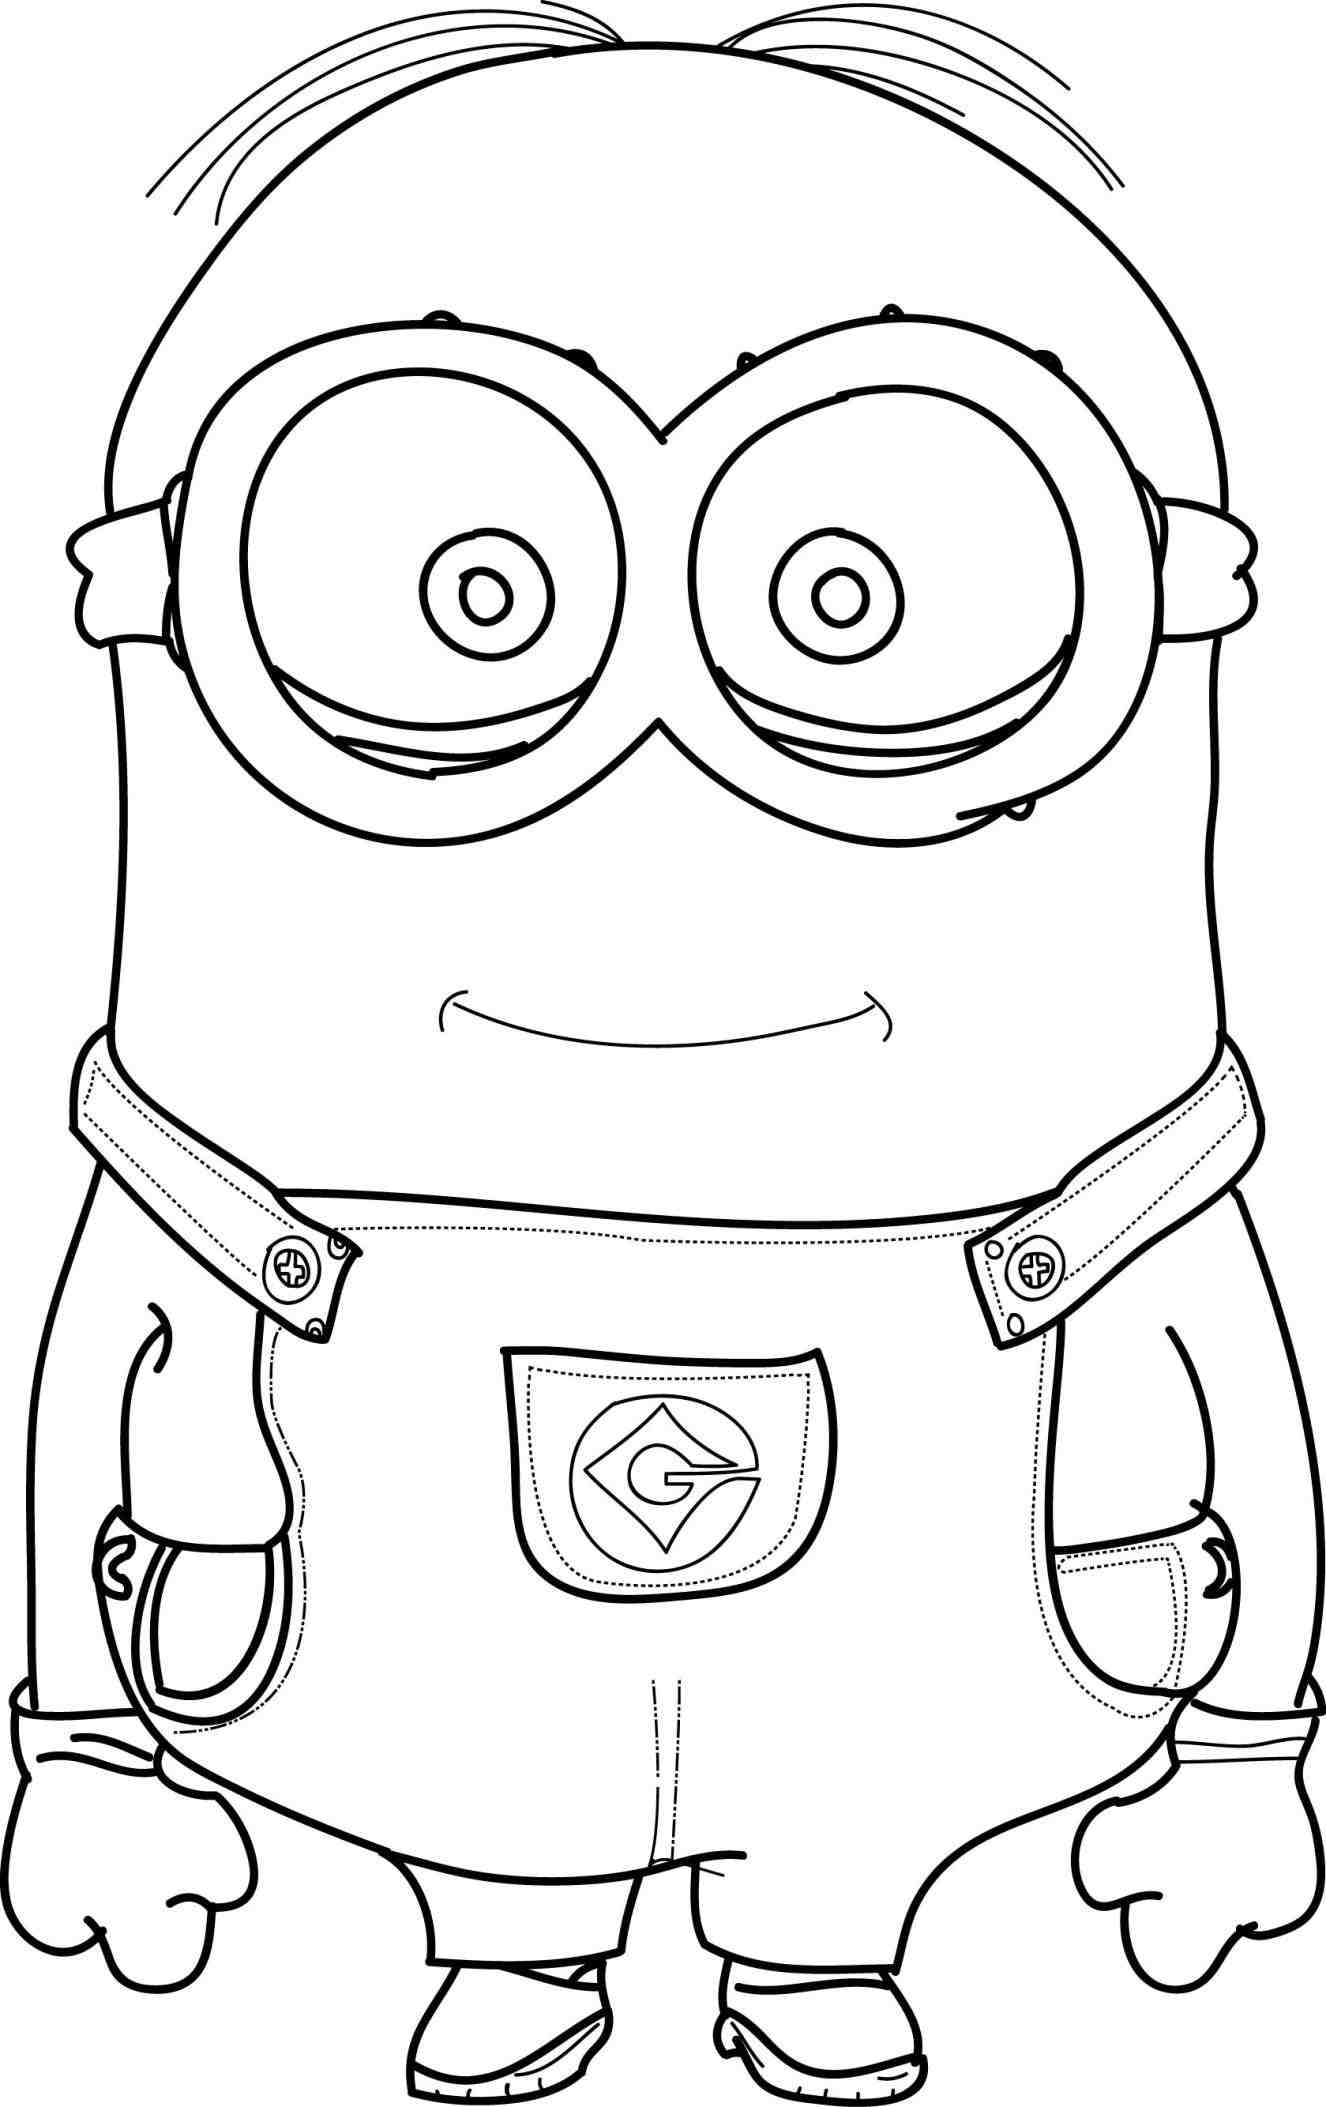 Minion Outline Drawing At Getdrawingscom Free For Personal Use